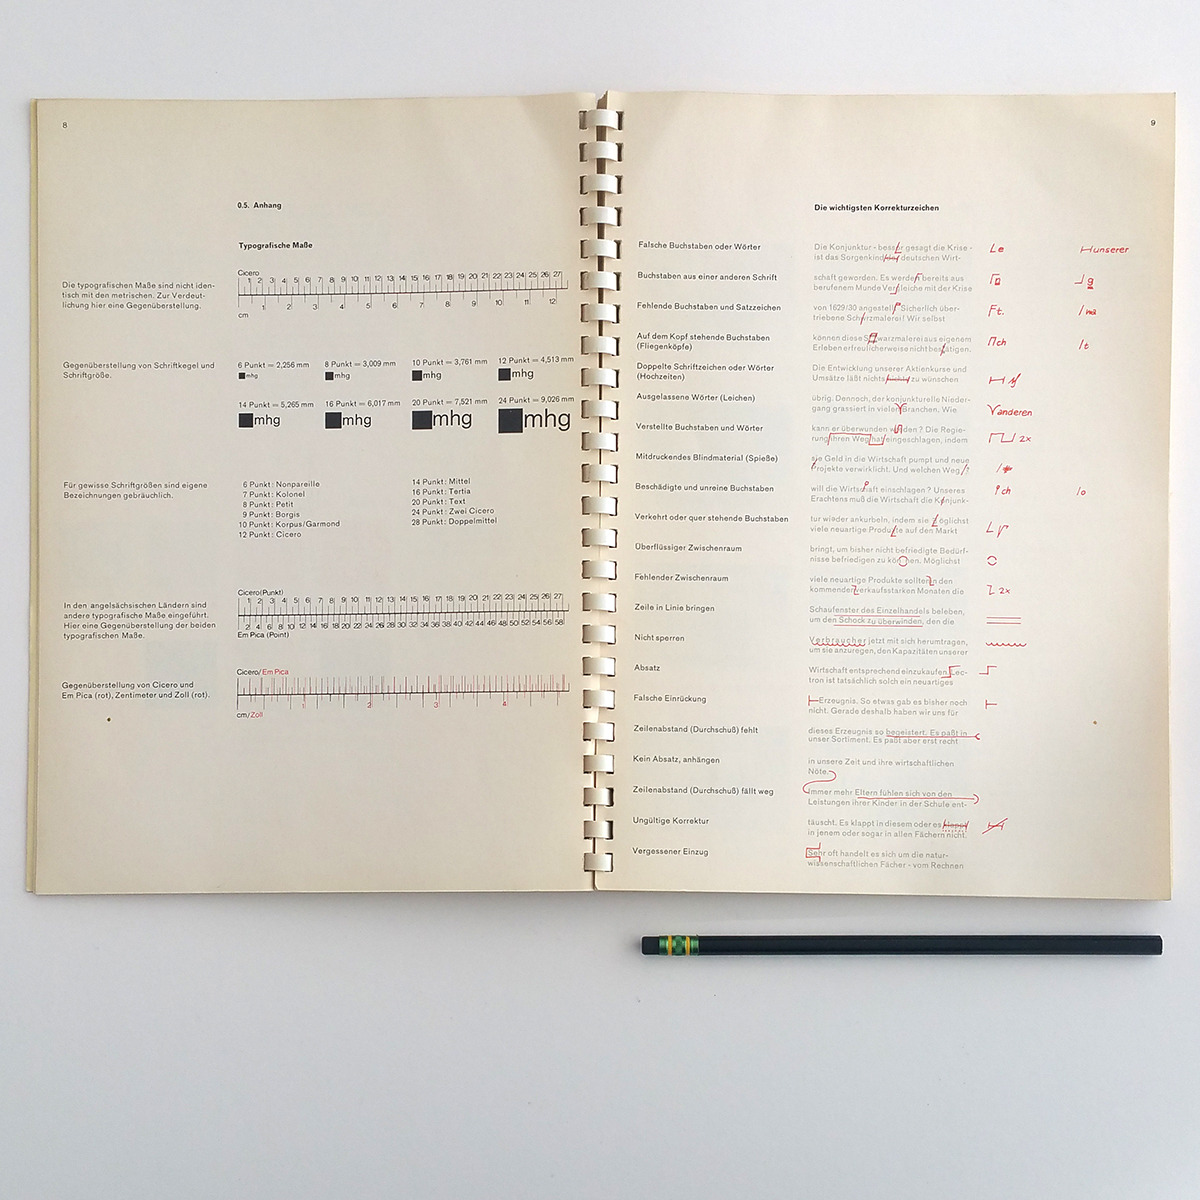 Braun Design Guidelines Manual